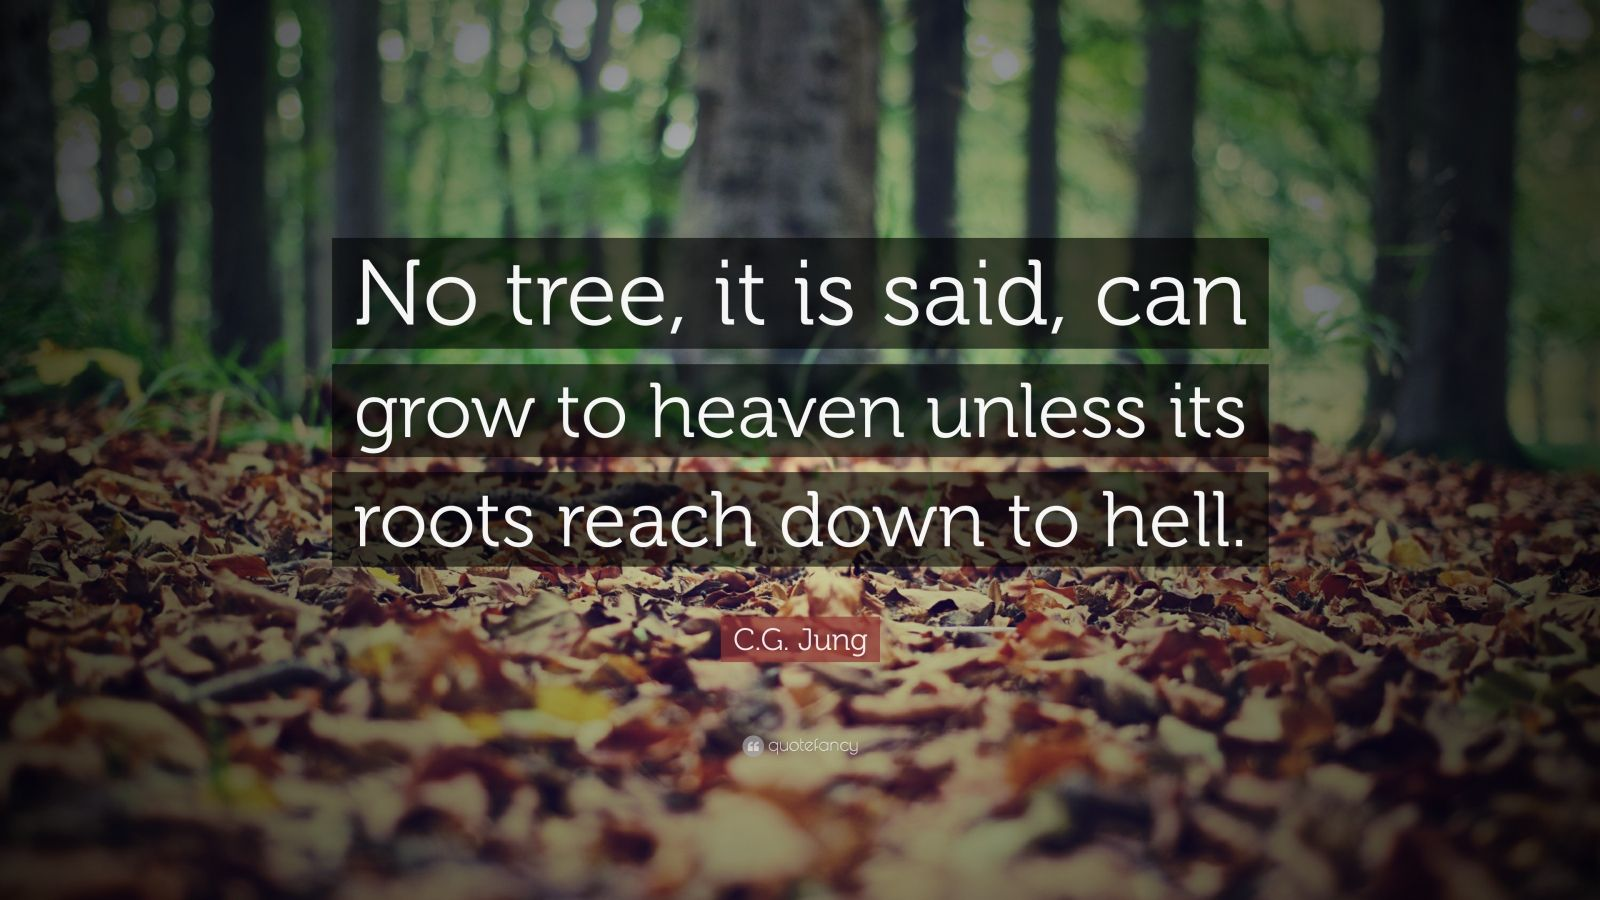 """C.G. Jung Quote: """"No tree, it is said, can grow to heaven unless its roots reach down to hell."""""""